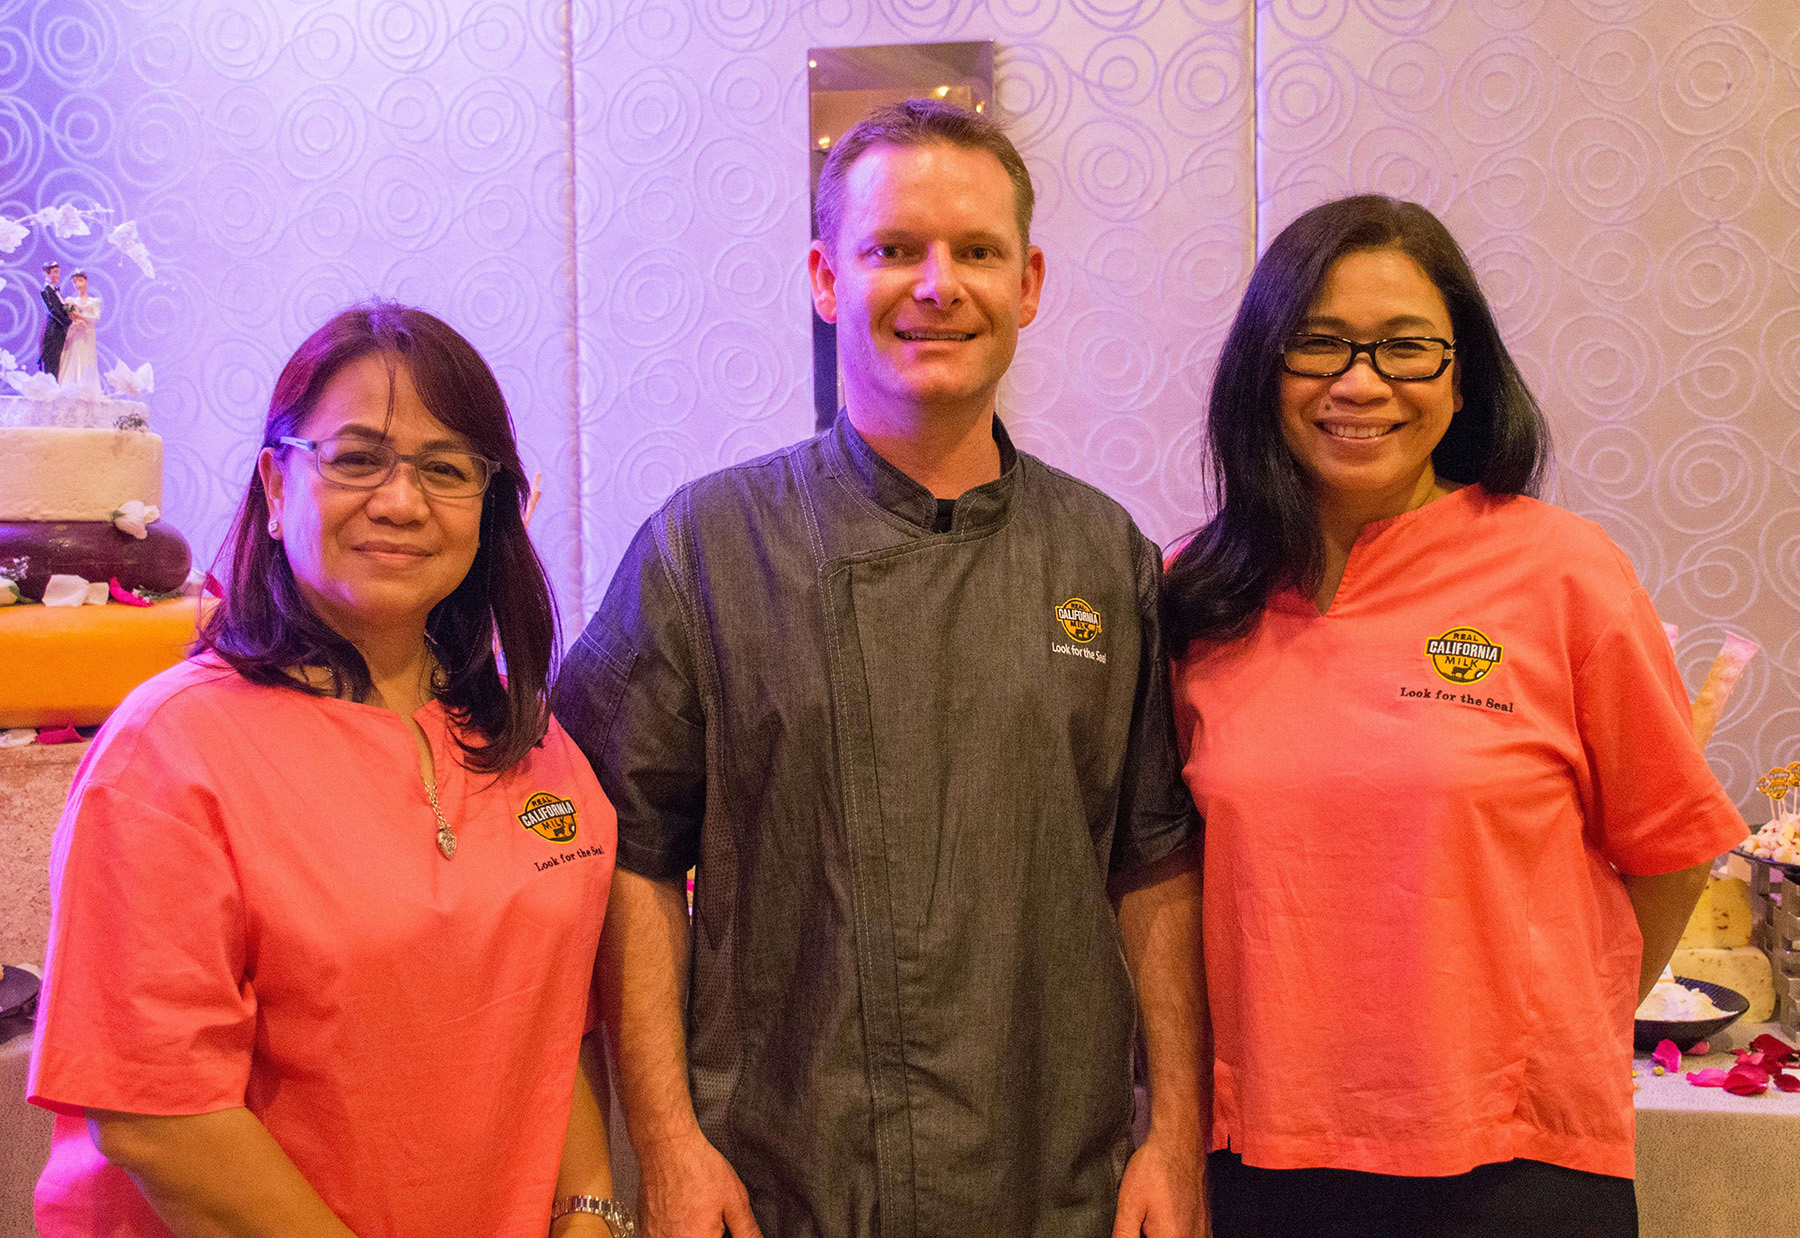 Joe Baird flanked by CMAB country representatives for the Philippines Evelyn Mercurio and Reji Retugal-Onal